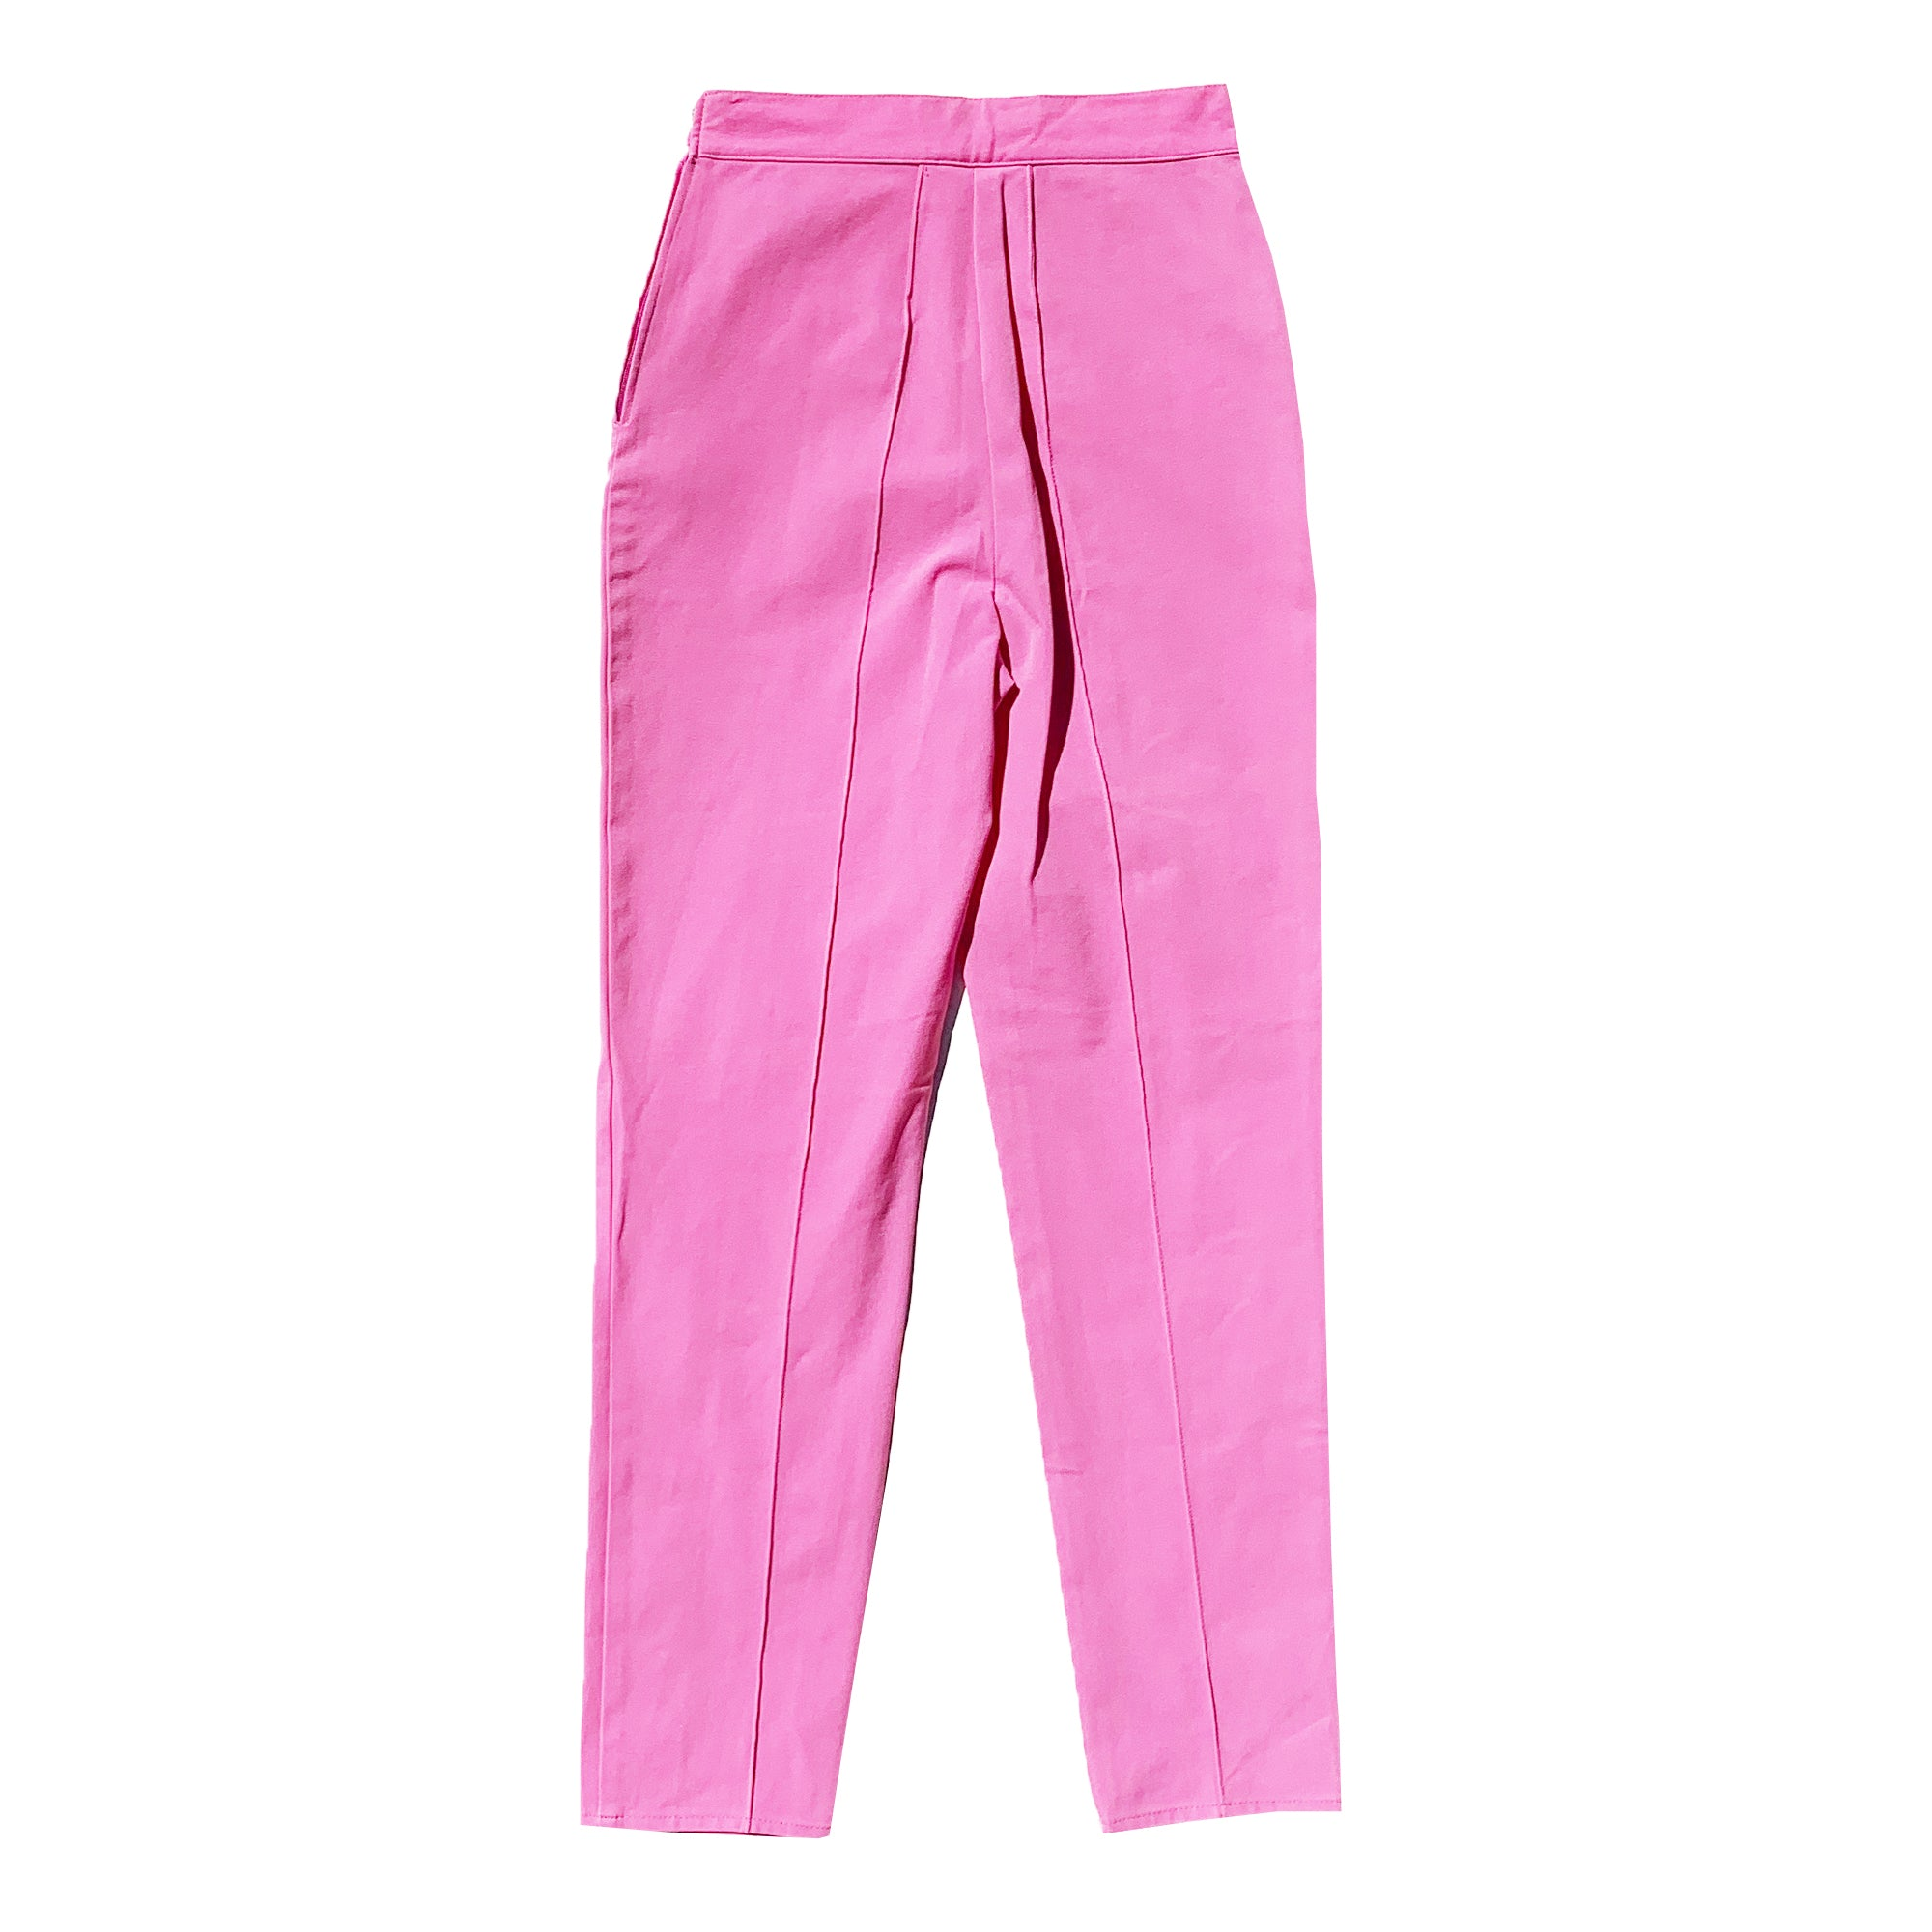 Versace Pleated Pant (Pink) UK 8